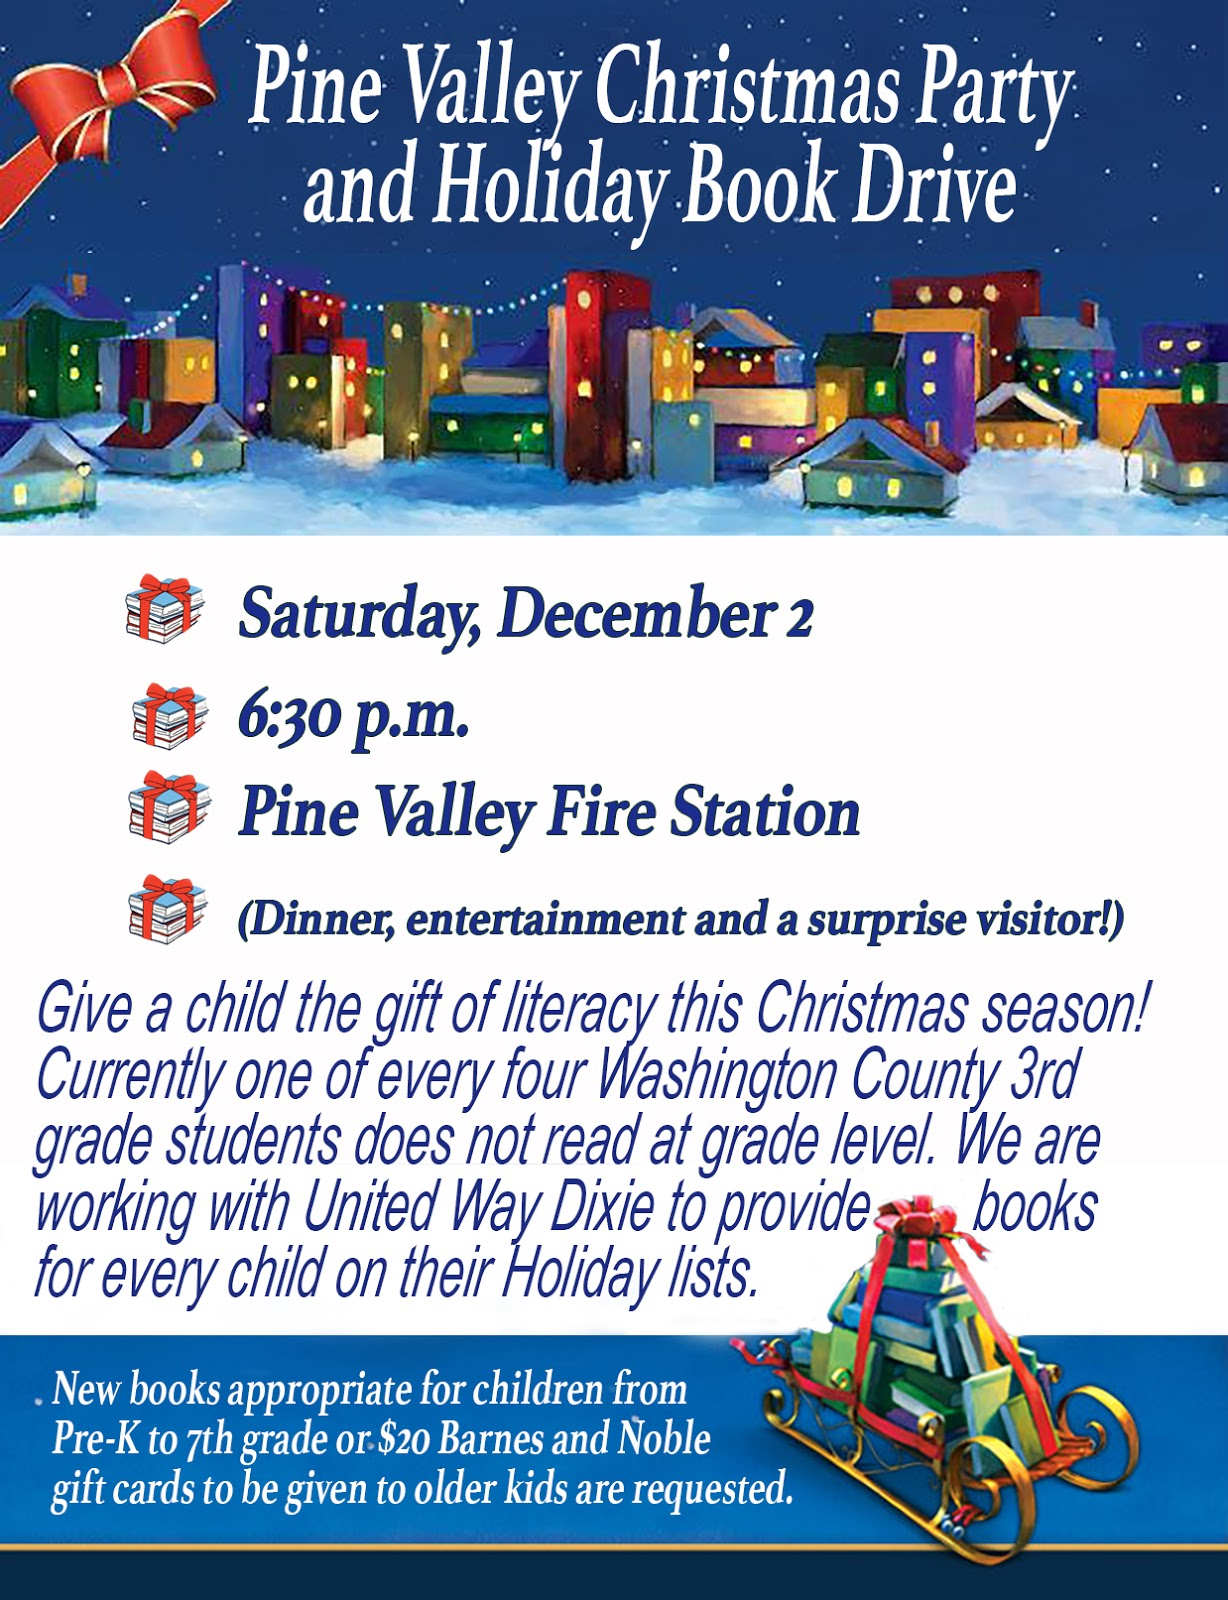 Pine Valley Blog: Christmas Party and Holiday Book Drive Dec 2